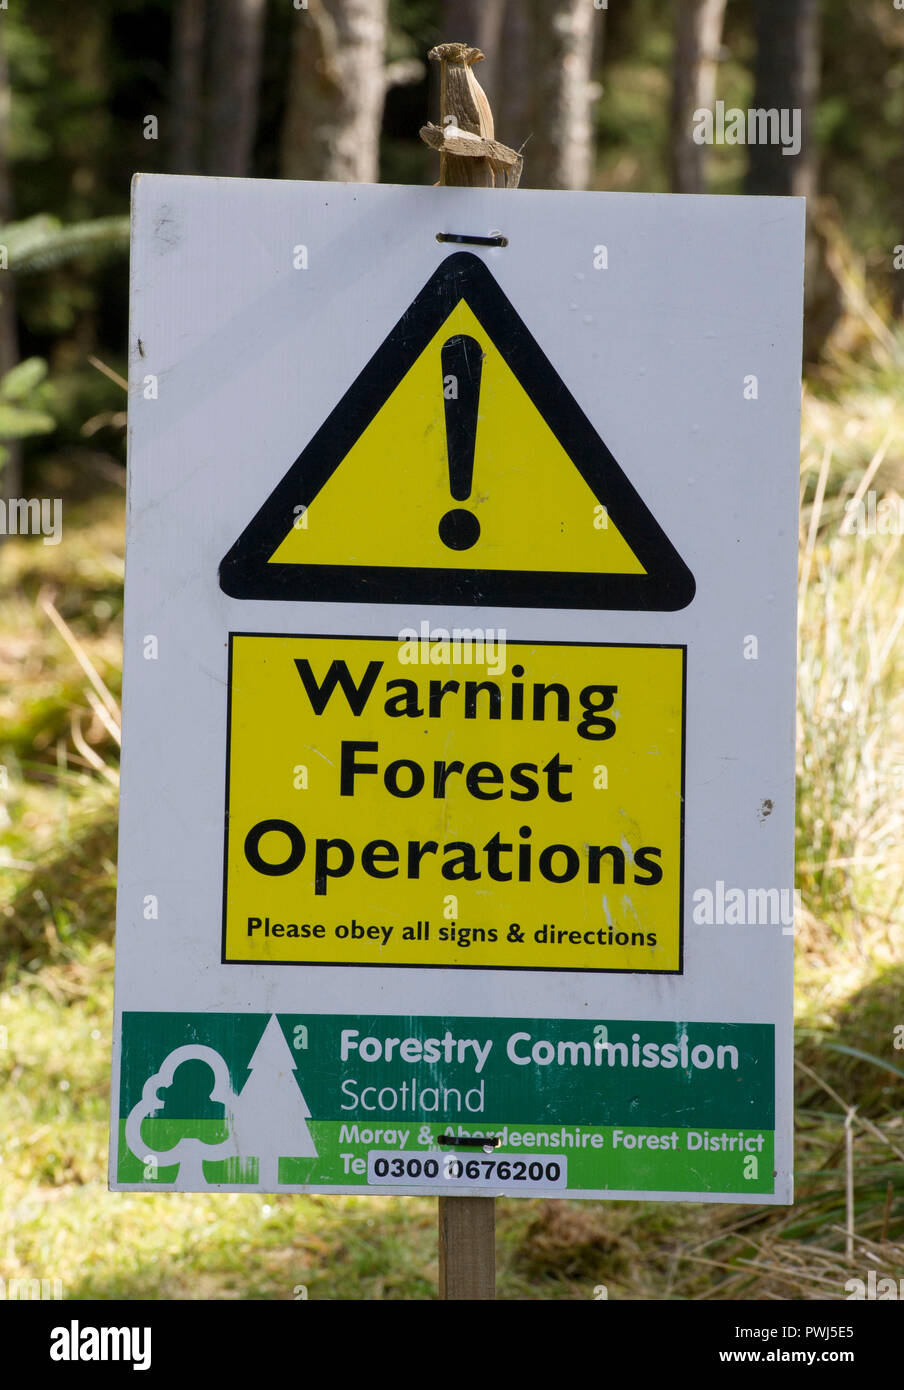 Forestry operation in Clashindarroch Forest., near Huntly, Aberdeenshire. - Stock Image